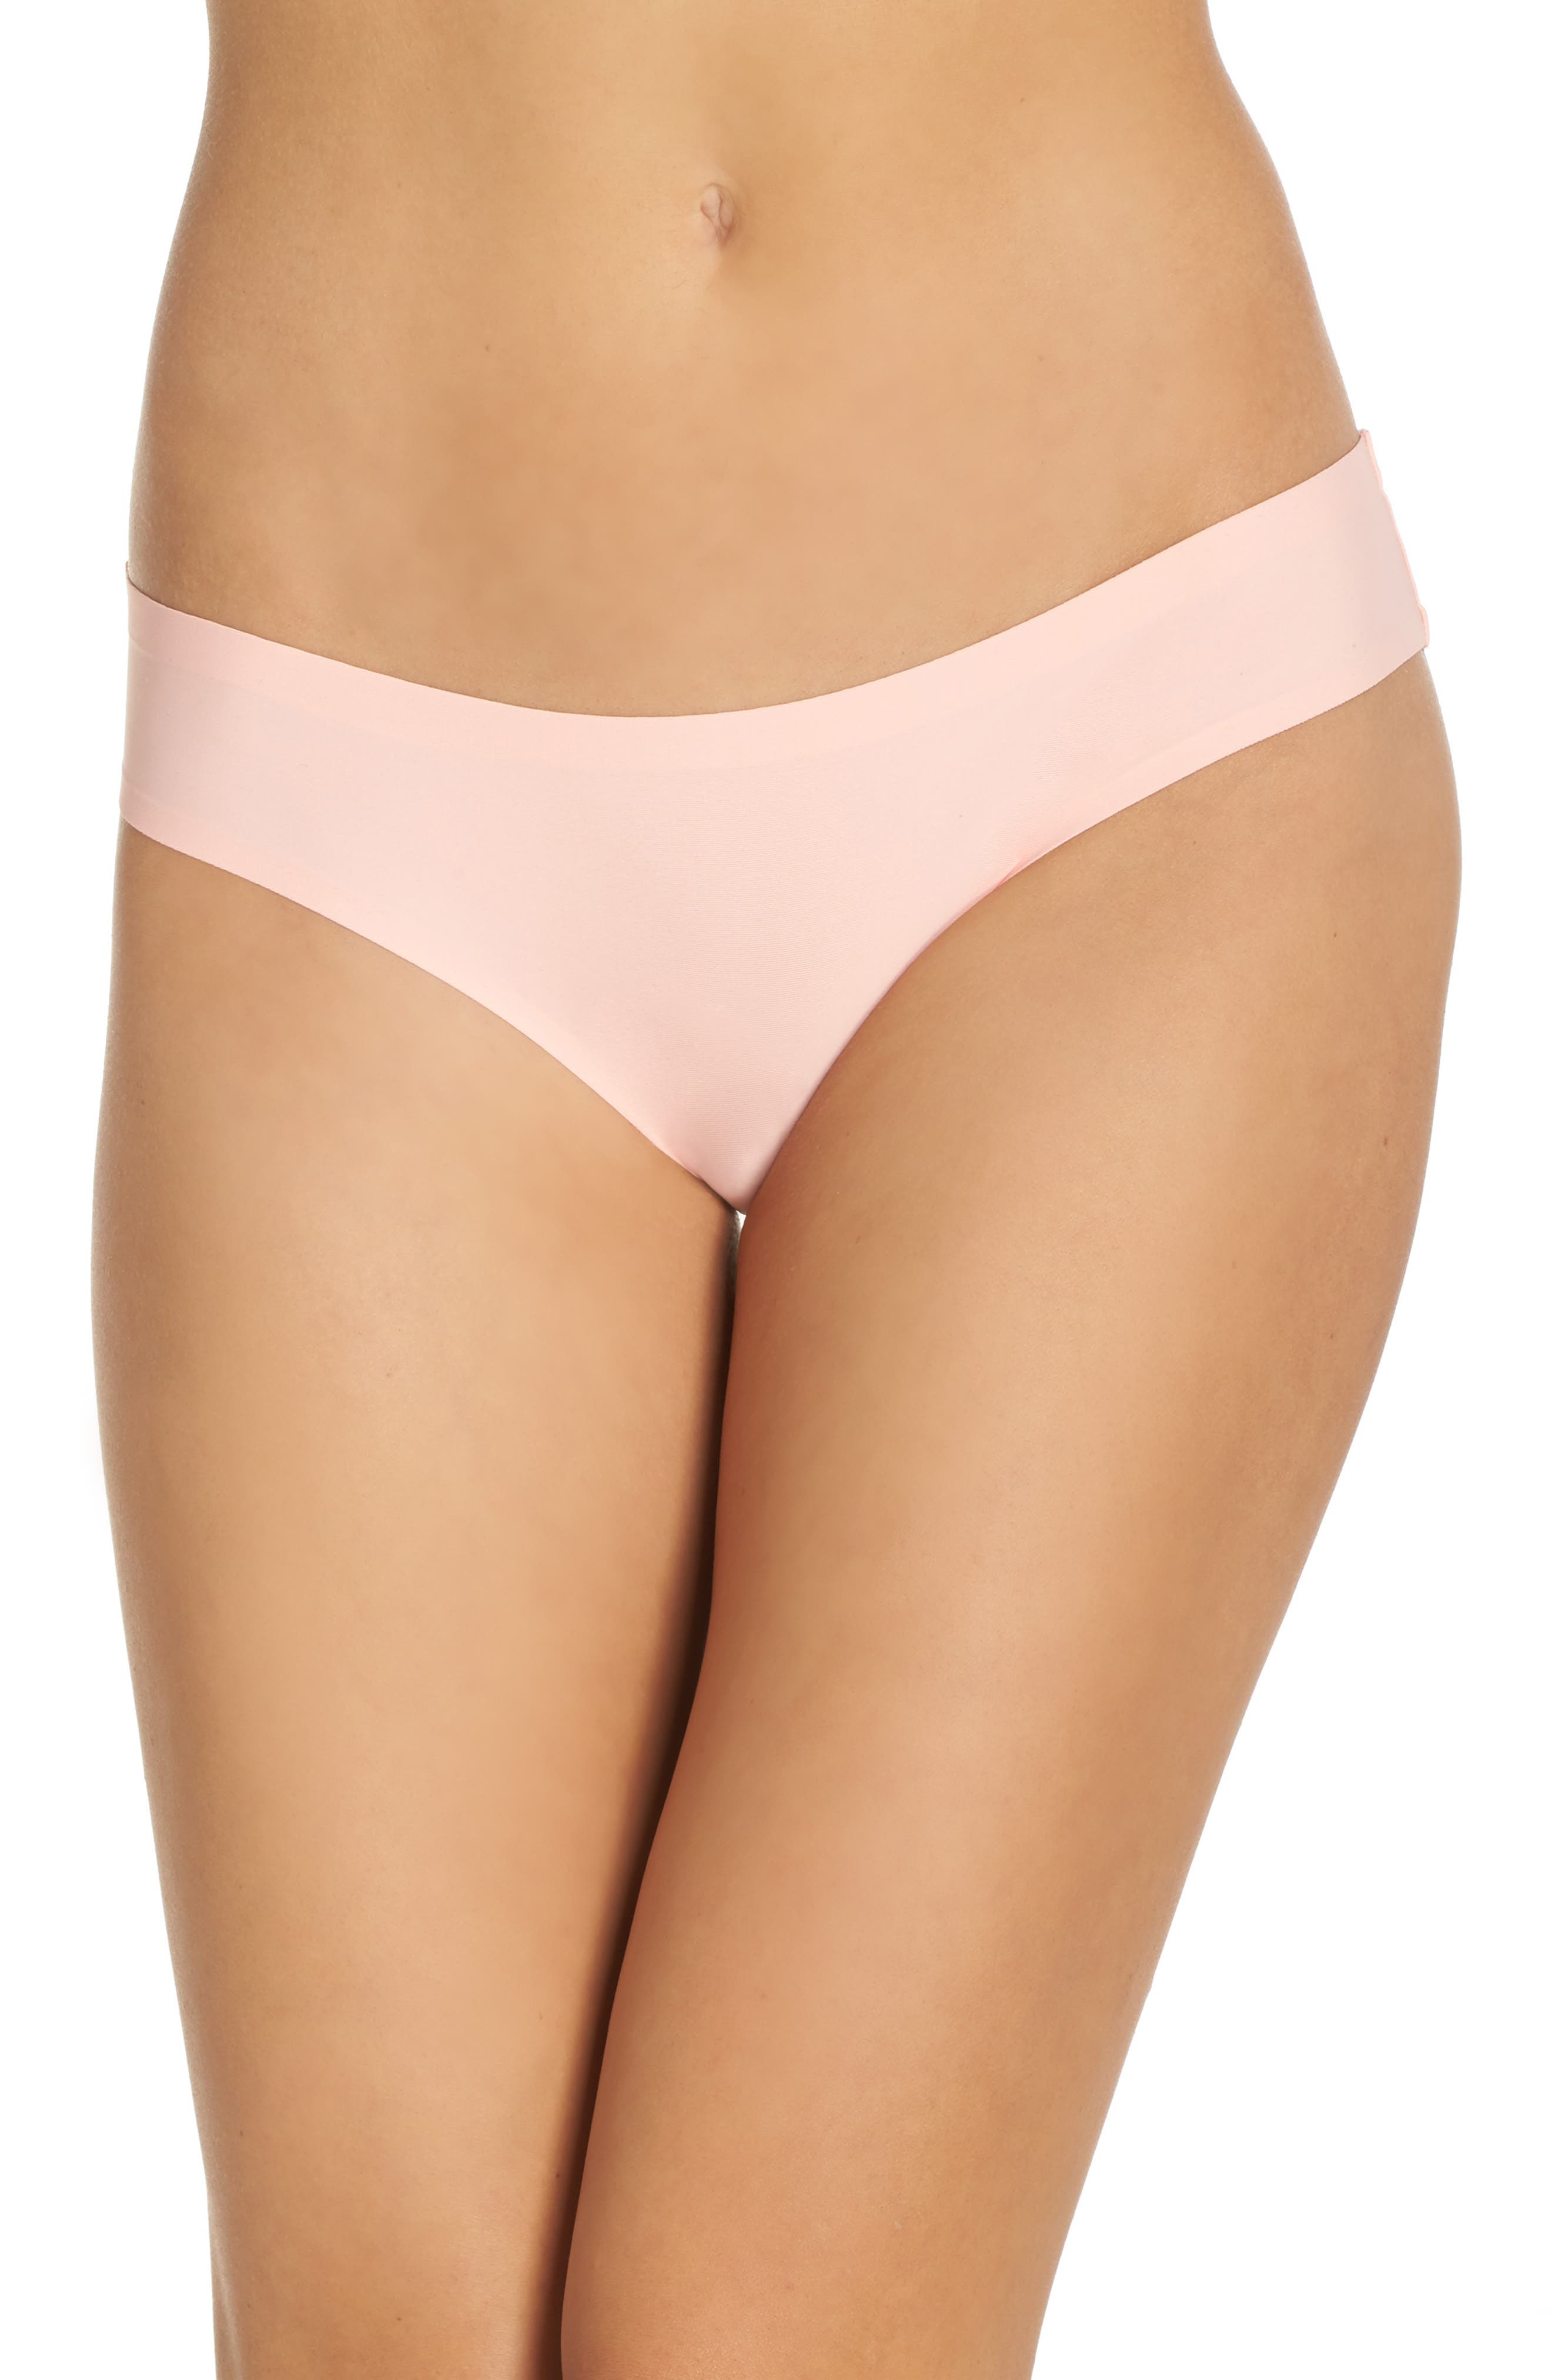 Alternate Image 1 Selected - Honeydew Intimates Skinz Hipster Briefs (3 for $33)